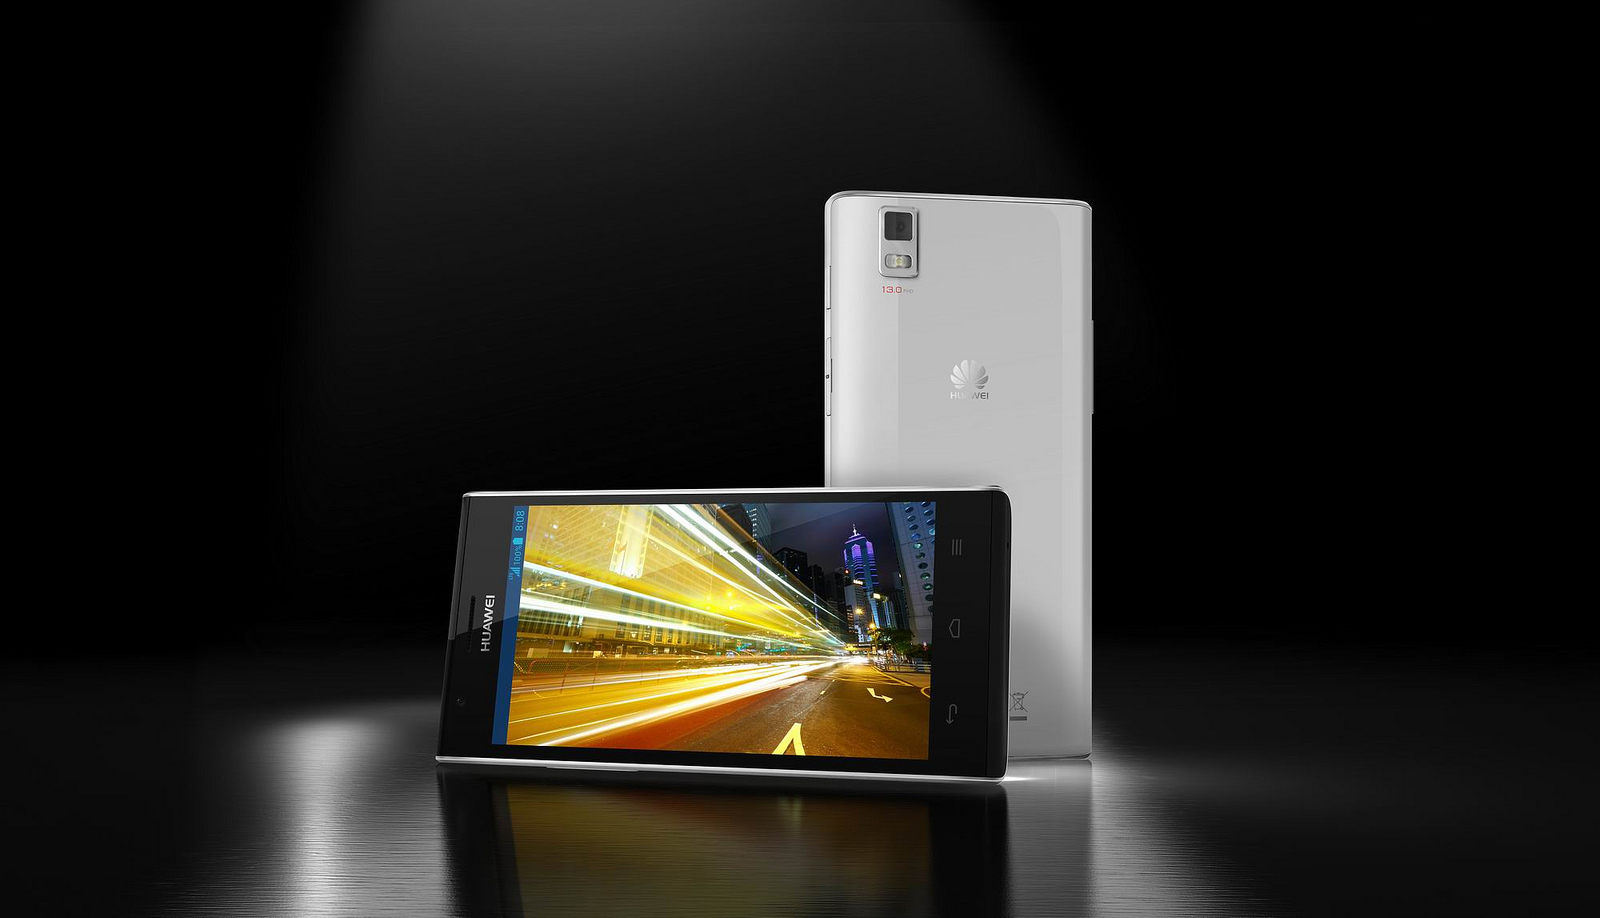 HUAWEI Ascend P2 breaks all records with its 150 Mbps download speed